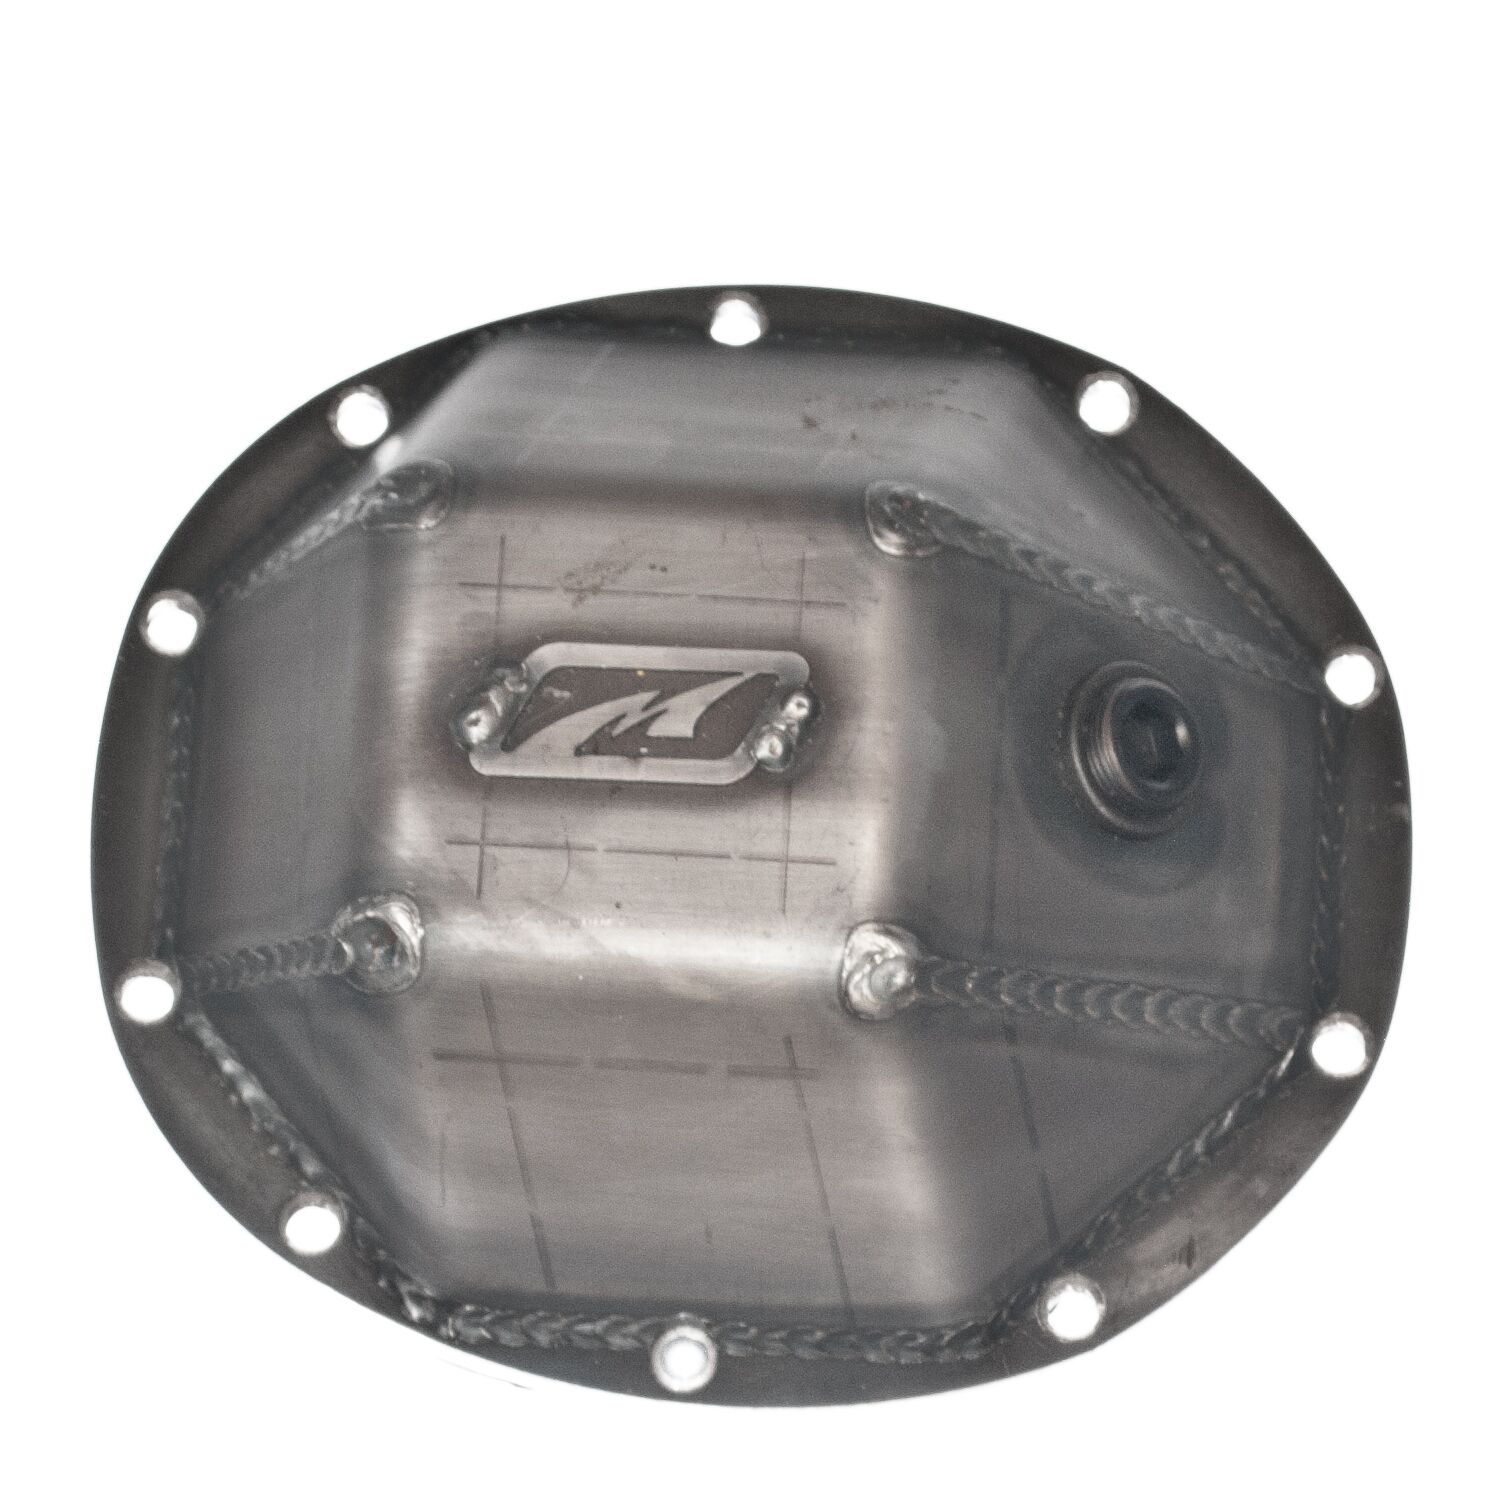 Dana 35 Differential Cover Integrated 3/4 Iinch Fill Plug Motobilt